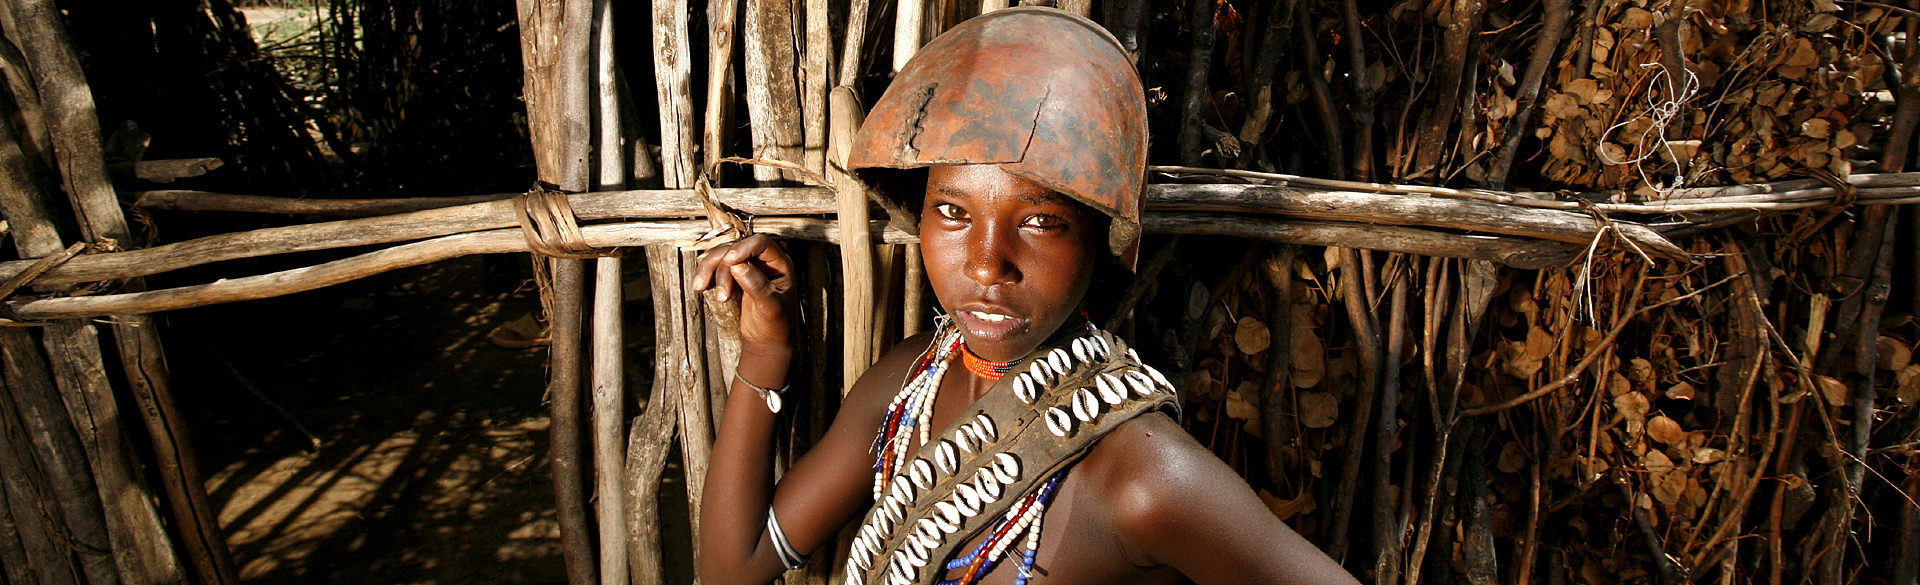 Dorze Portraits, The Lower Omo Valley, Ethiopia by Andy Richter